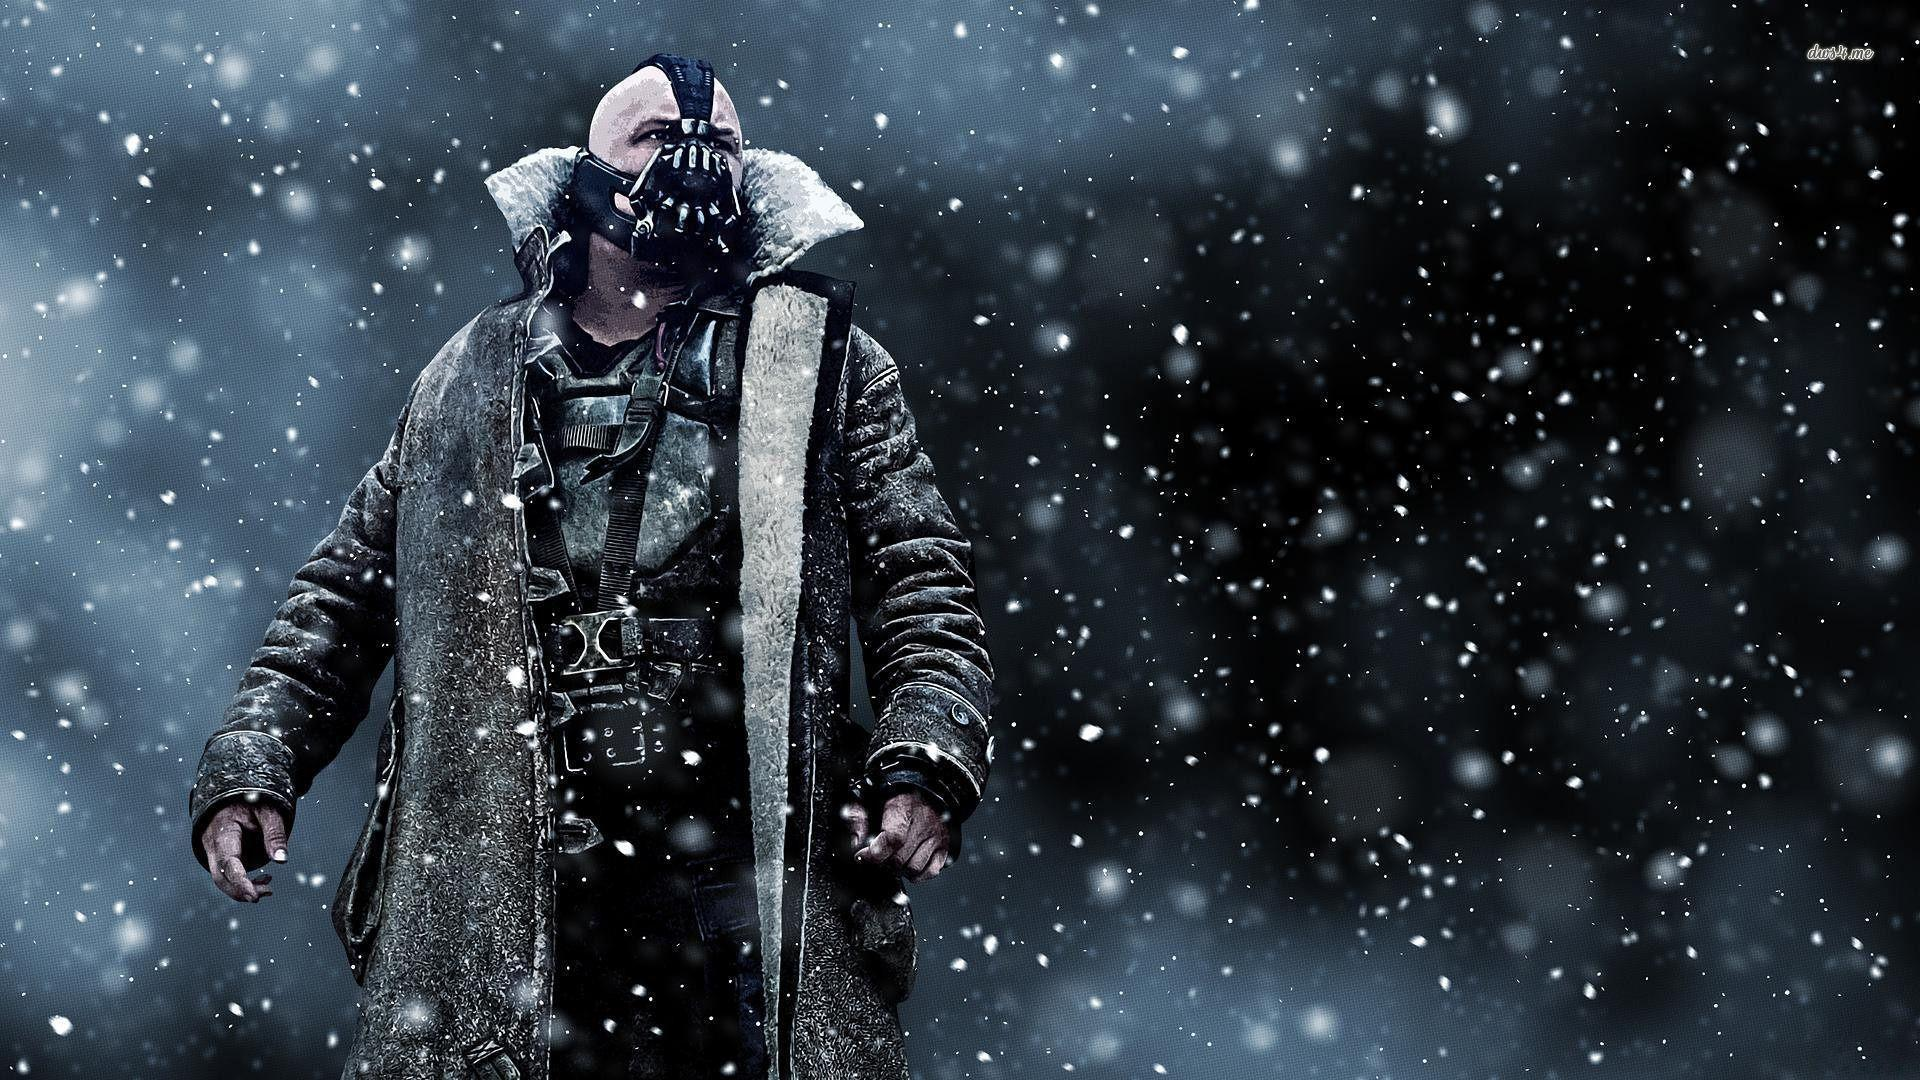 Bane wallpapers wallpaper cave wallpapertags bane the dark knight rises hd tablet smartphone voltagebd Image collections